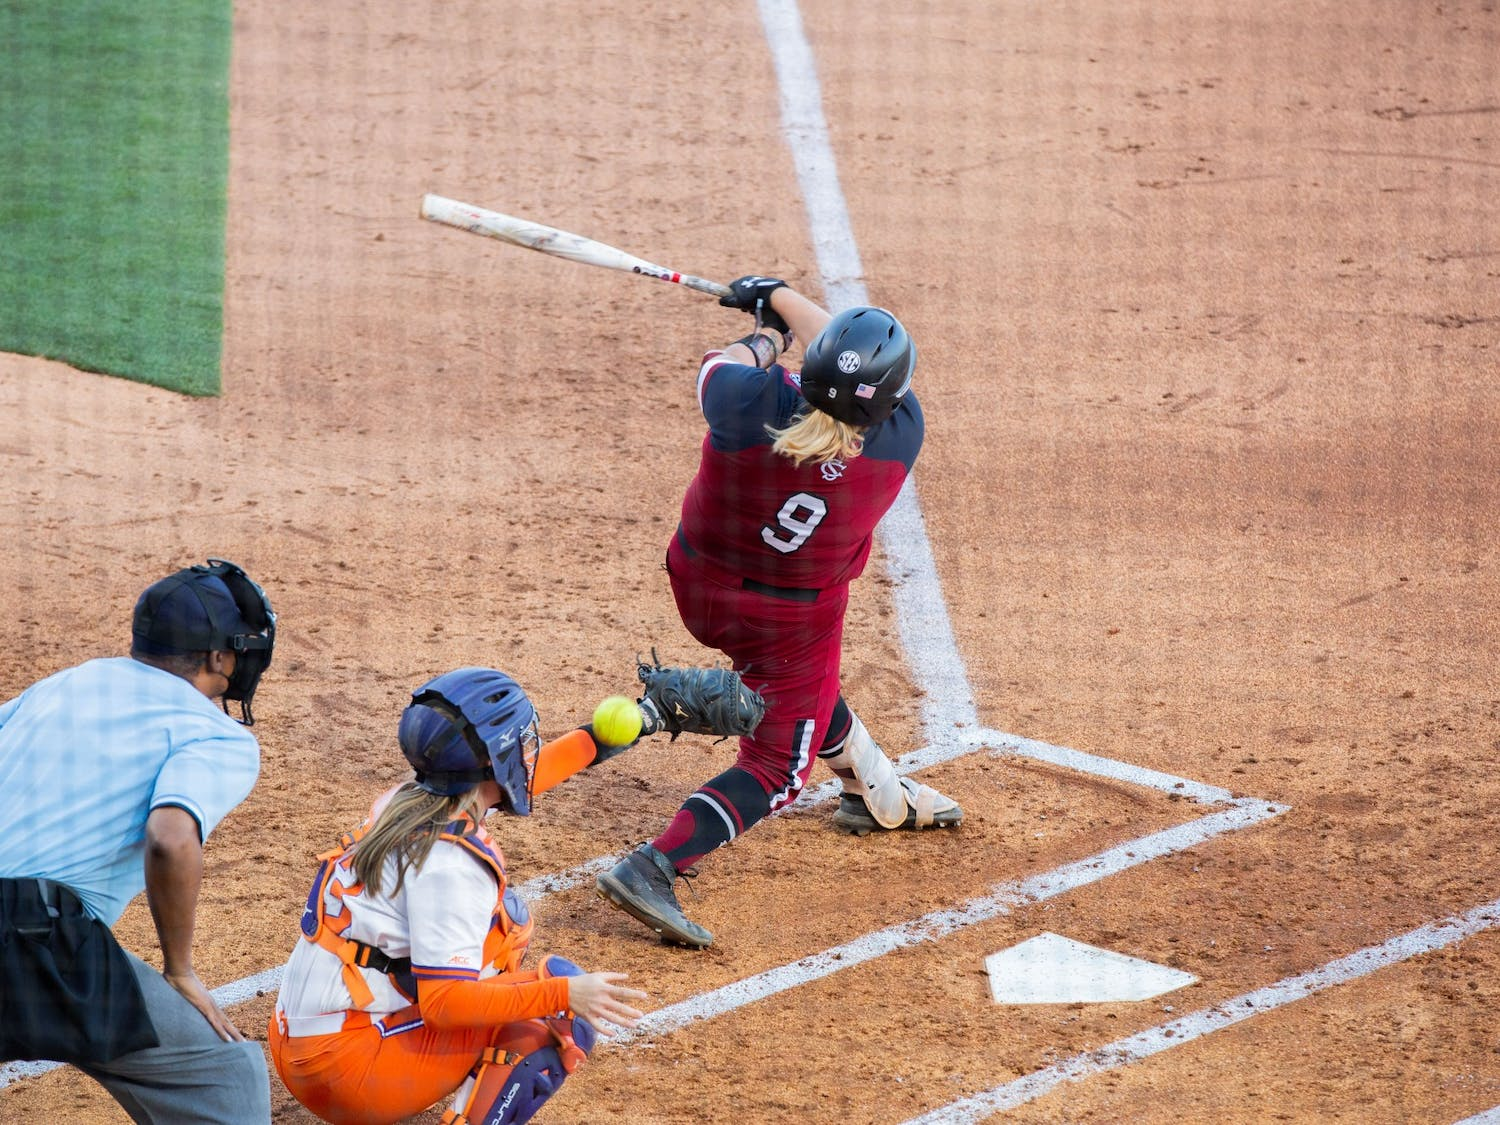 Graduate student pitcher Cayla Drotar swings at the ball pitched by Clemson's pitcher.